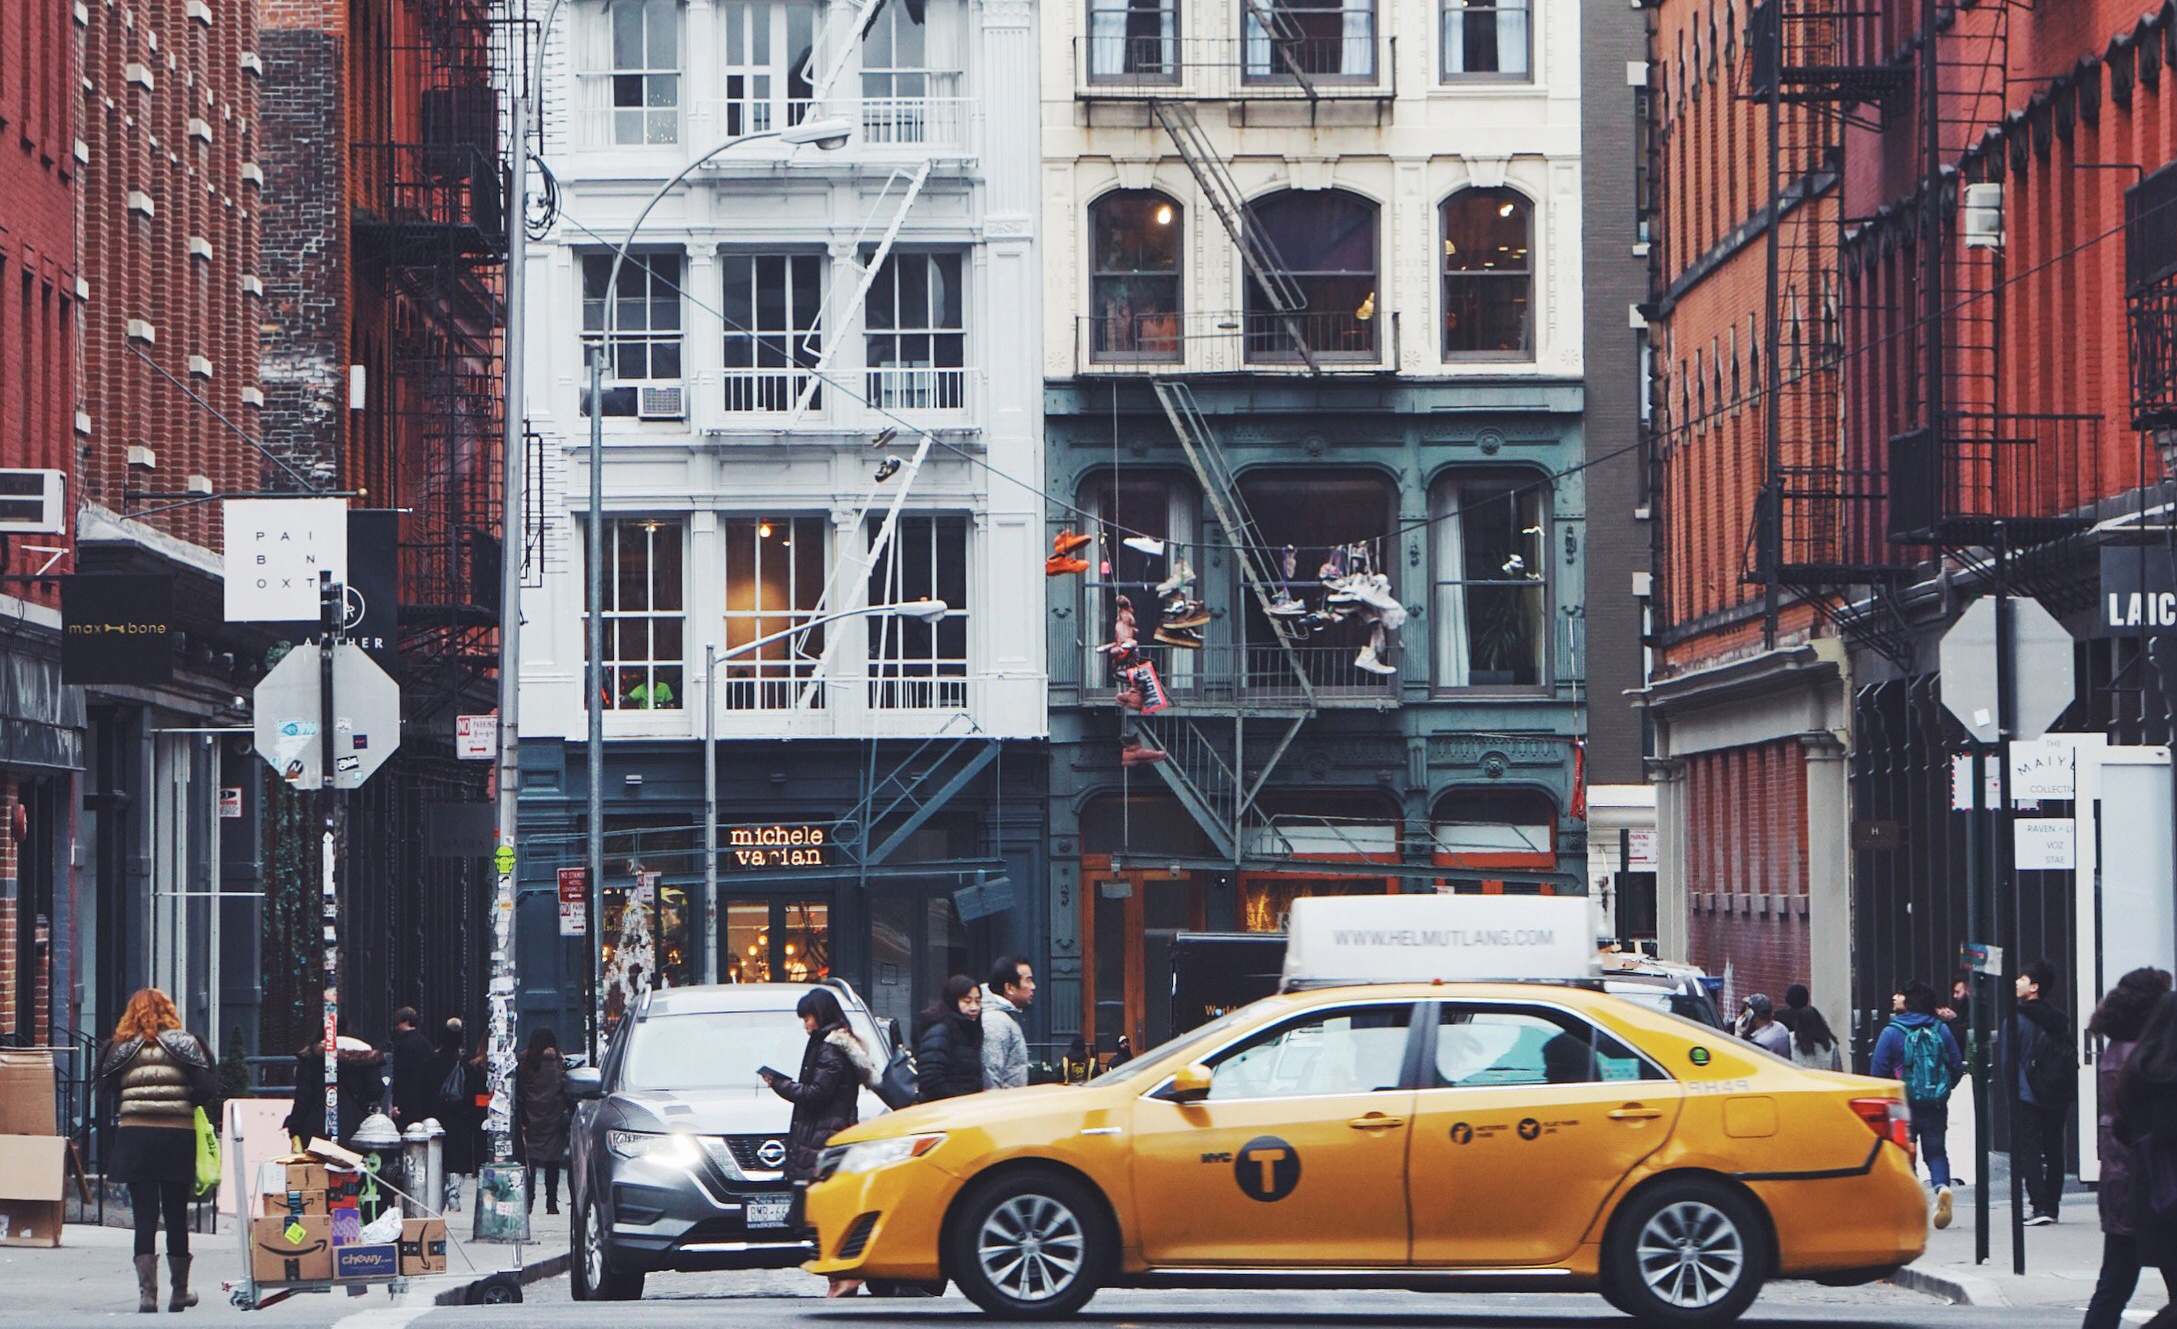 Taxi Cab in SoHO